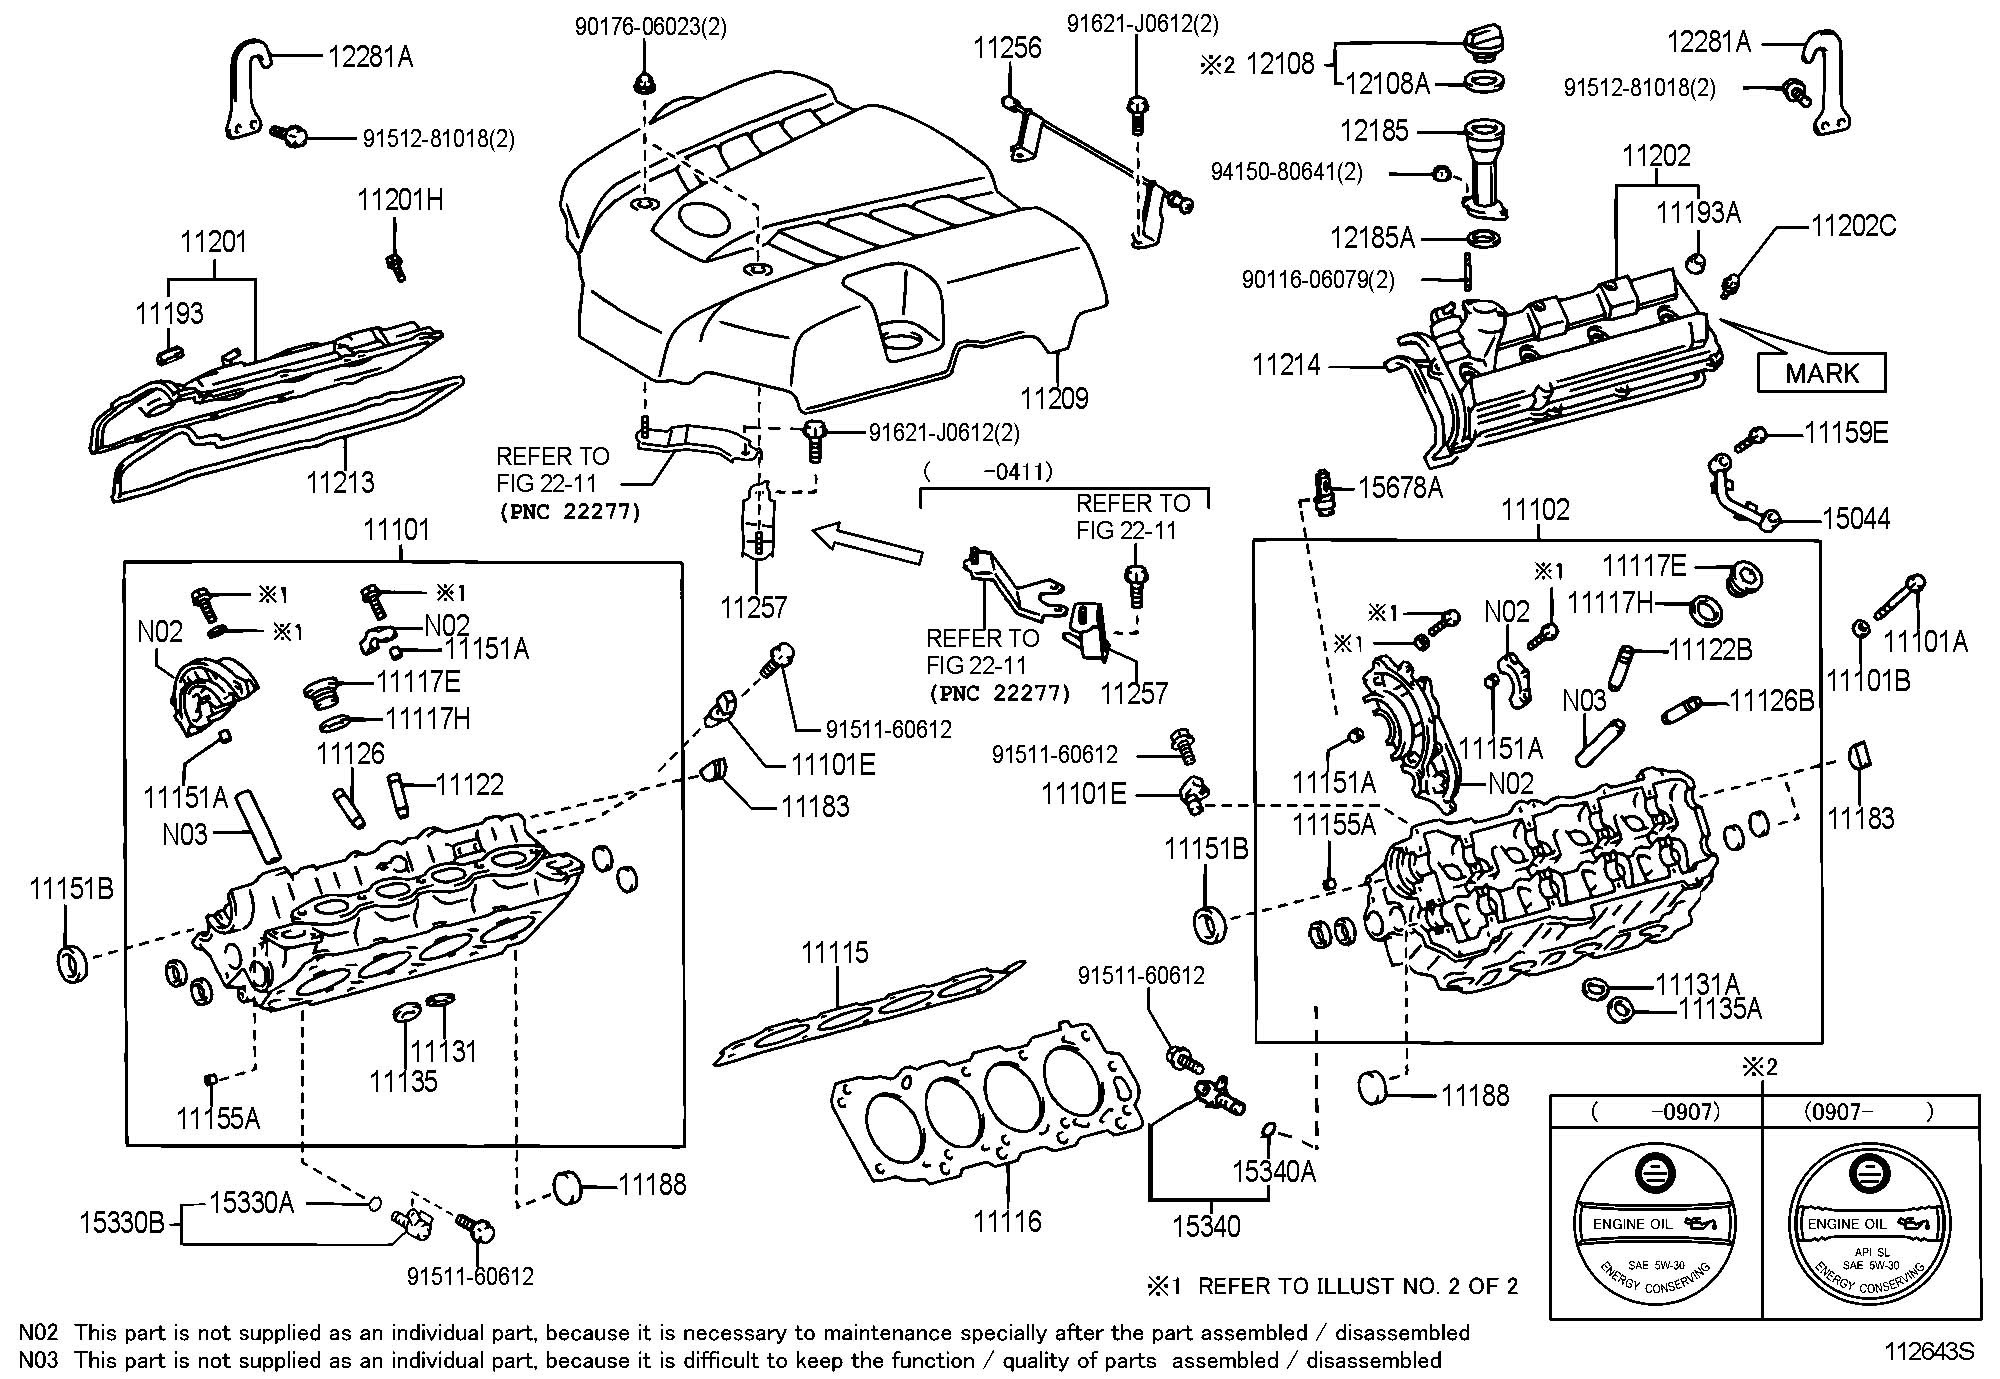 hight resolution of lexus rx300 wiring diagram wiring library rh 28 dirtytalk camgirls de 1999 lexus rx300 engine 1999 lexus rx300 engine compartment diagram